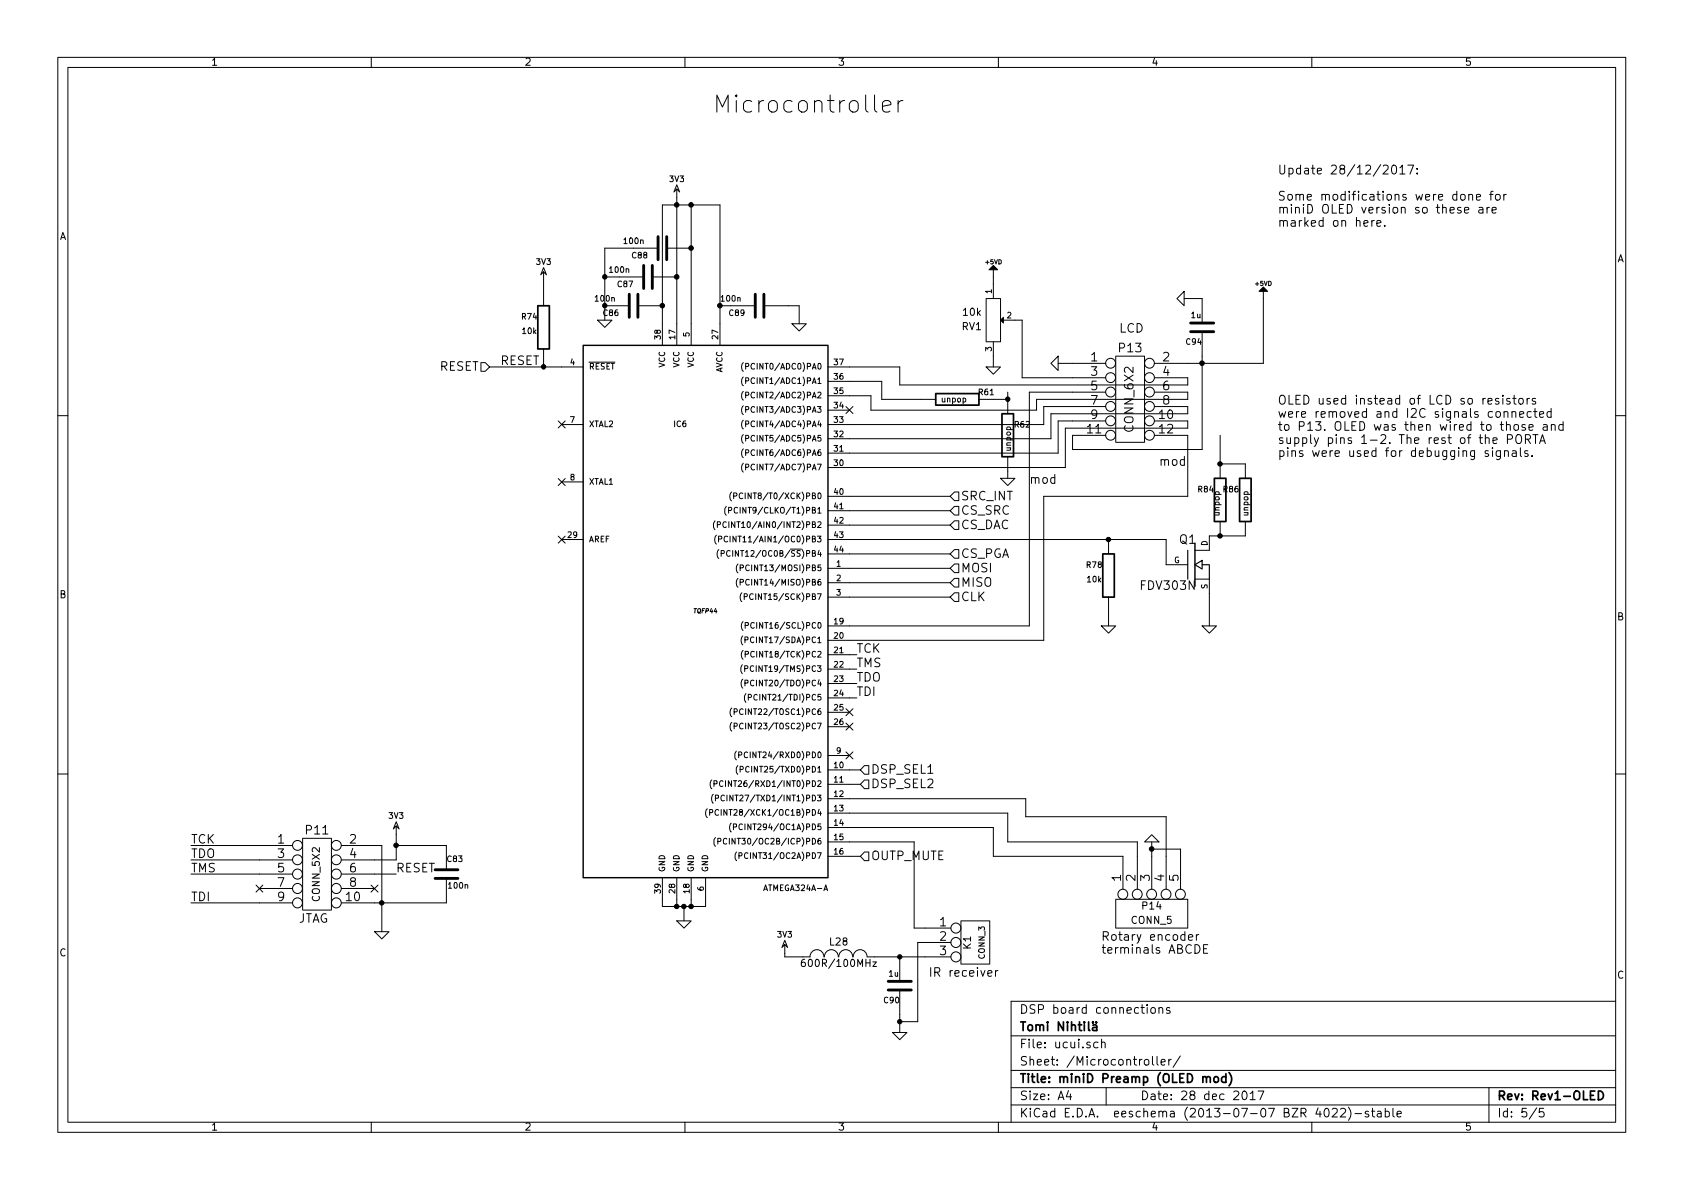 4 Pole Lighting Contactor Wiring Diagram furthermore Ch Ion Wiring Diagrams also Schneider Wiring Diagram Shunt Trip in addition Electronics Washing Machine Control Circuit Diagram additionally 3 Phase Rotary Converter Wiring Diagram. on eaton generator wiring diagram